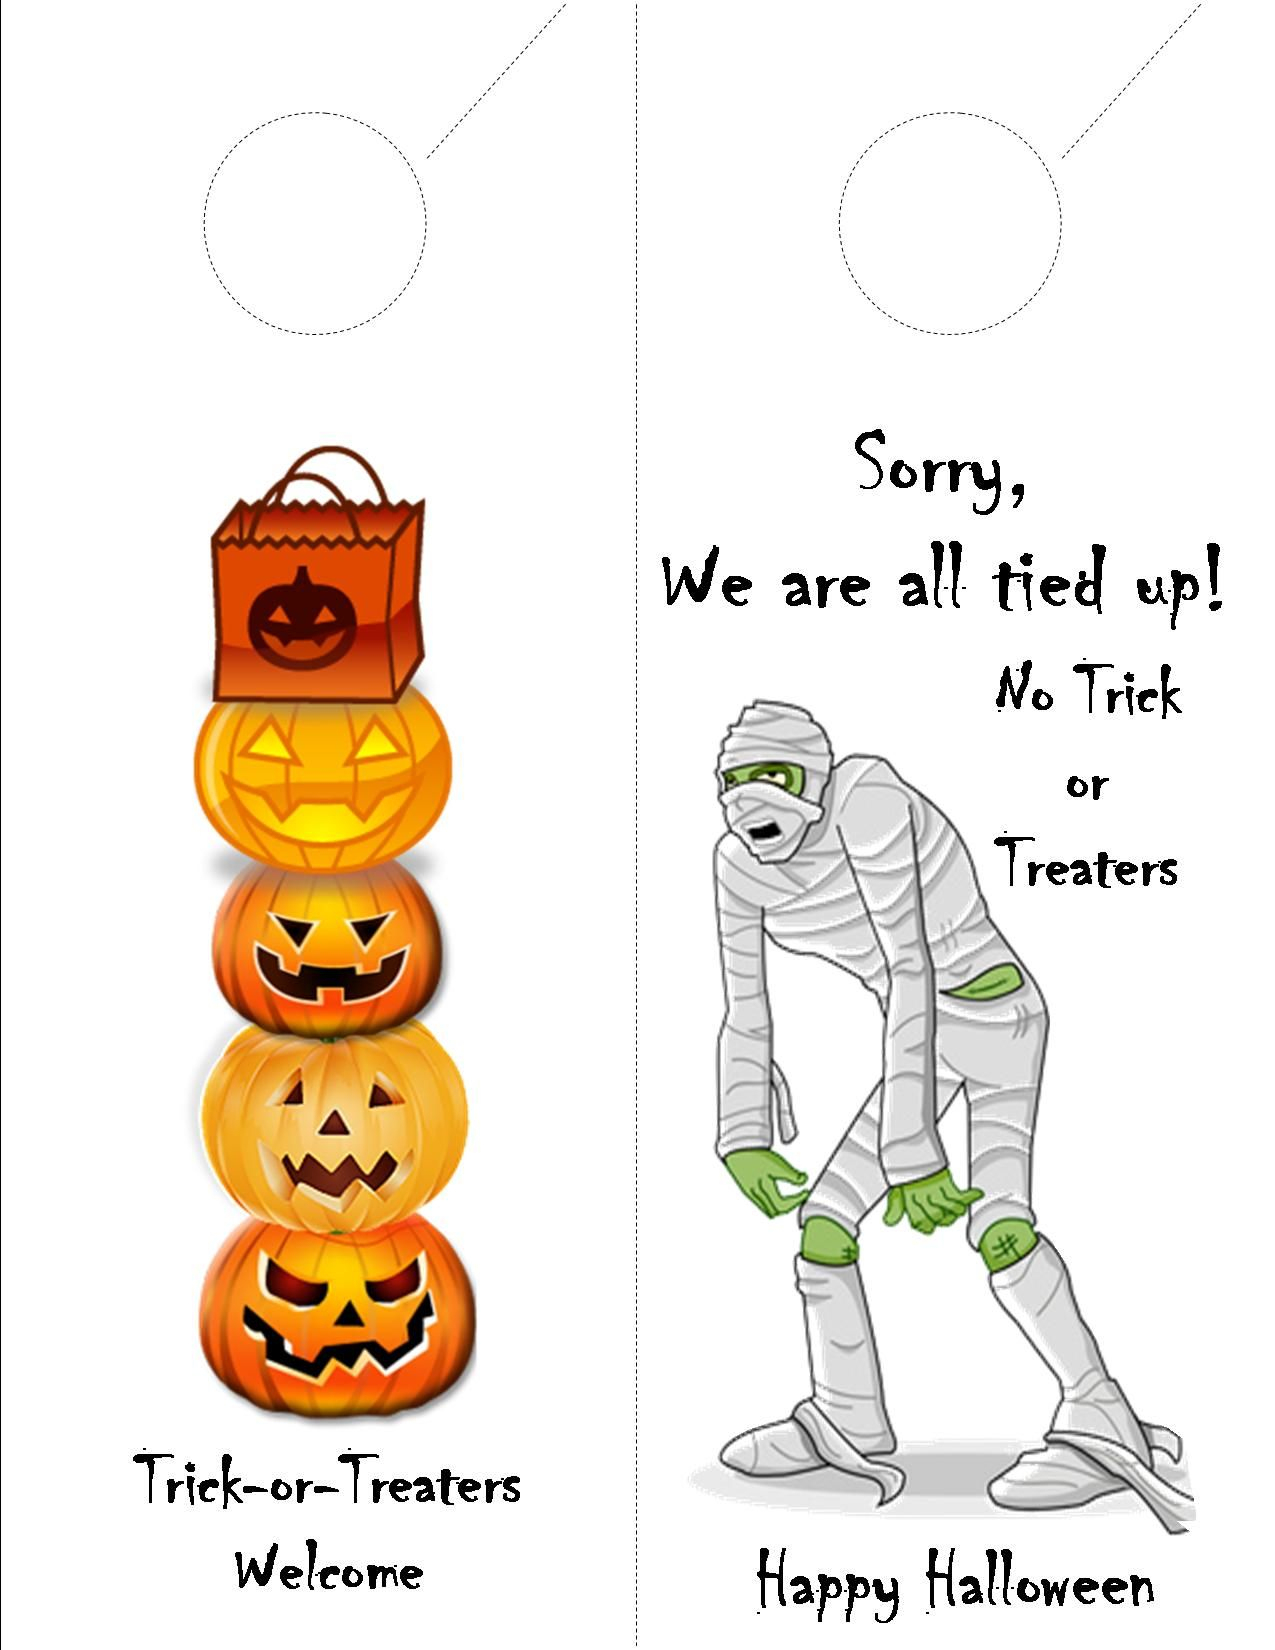 Free Printable Halloween Door Hanger For Your Apartment Community - Halloween Door Hangers Free Printable